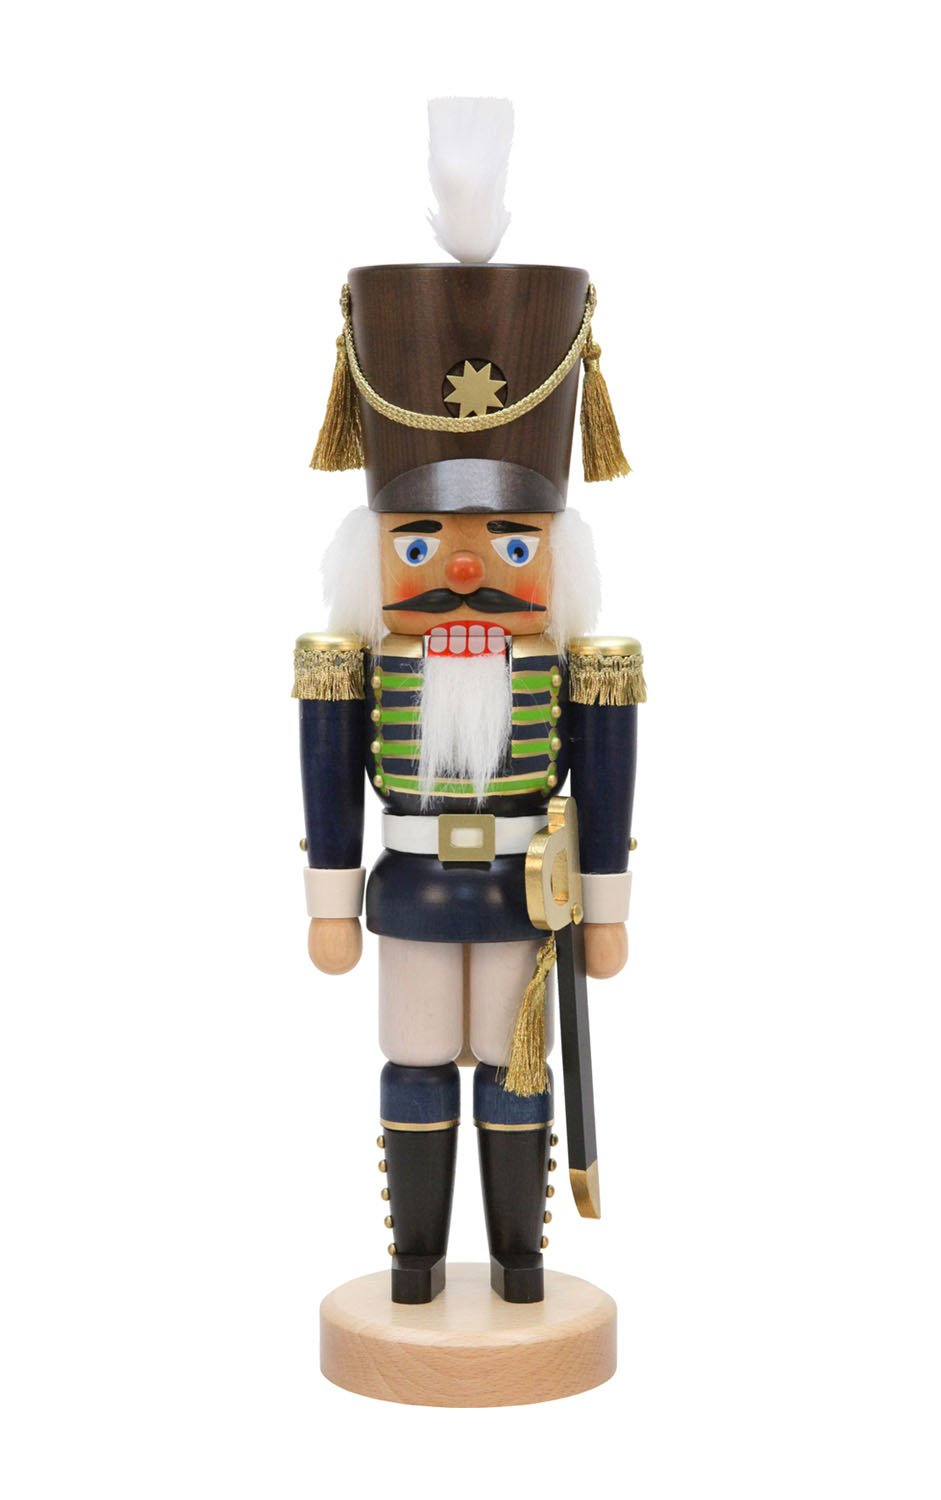 Alexander Taron Christian Ulbricht Decorative Blue Soldier Nutcracker by Alexander Taron